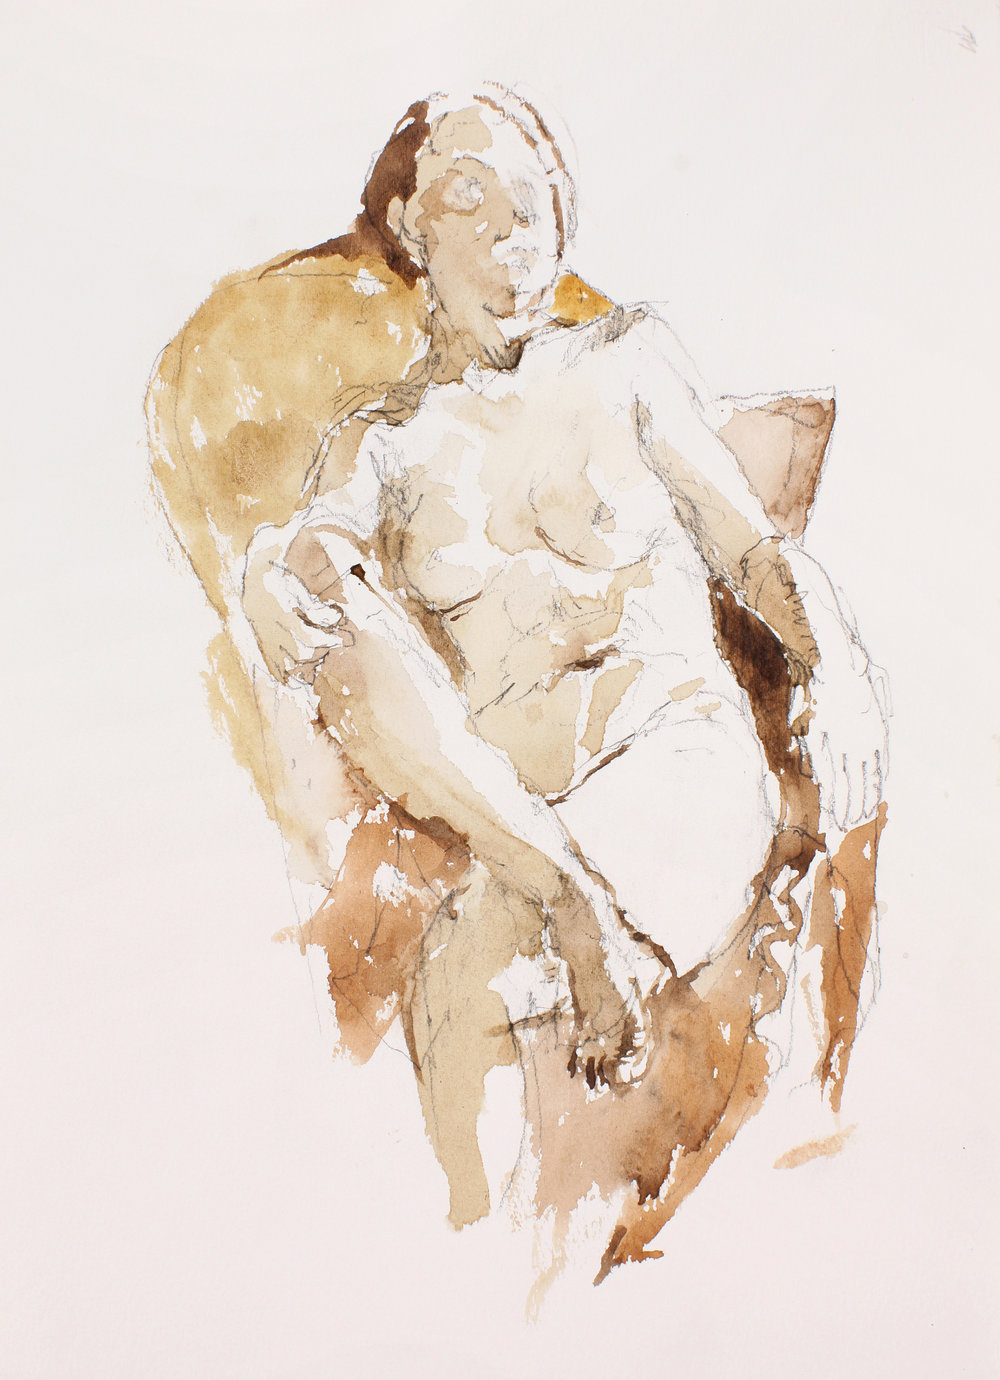 2005_Seated_Nude_with_Book_watercolour_and_pencil_on_paper_15x11in_38x28cm_WPF117.jpg